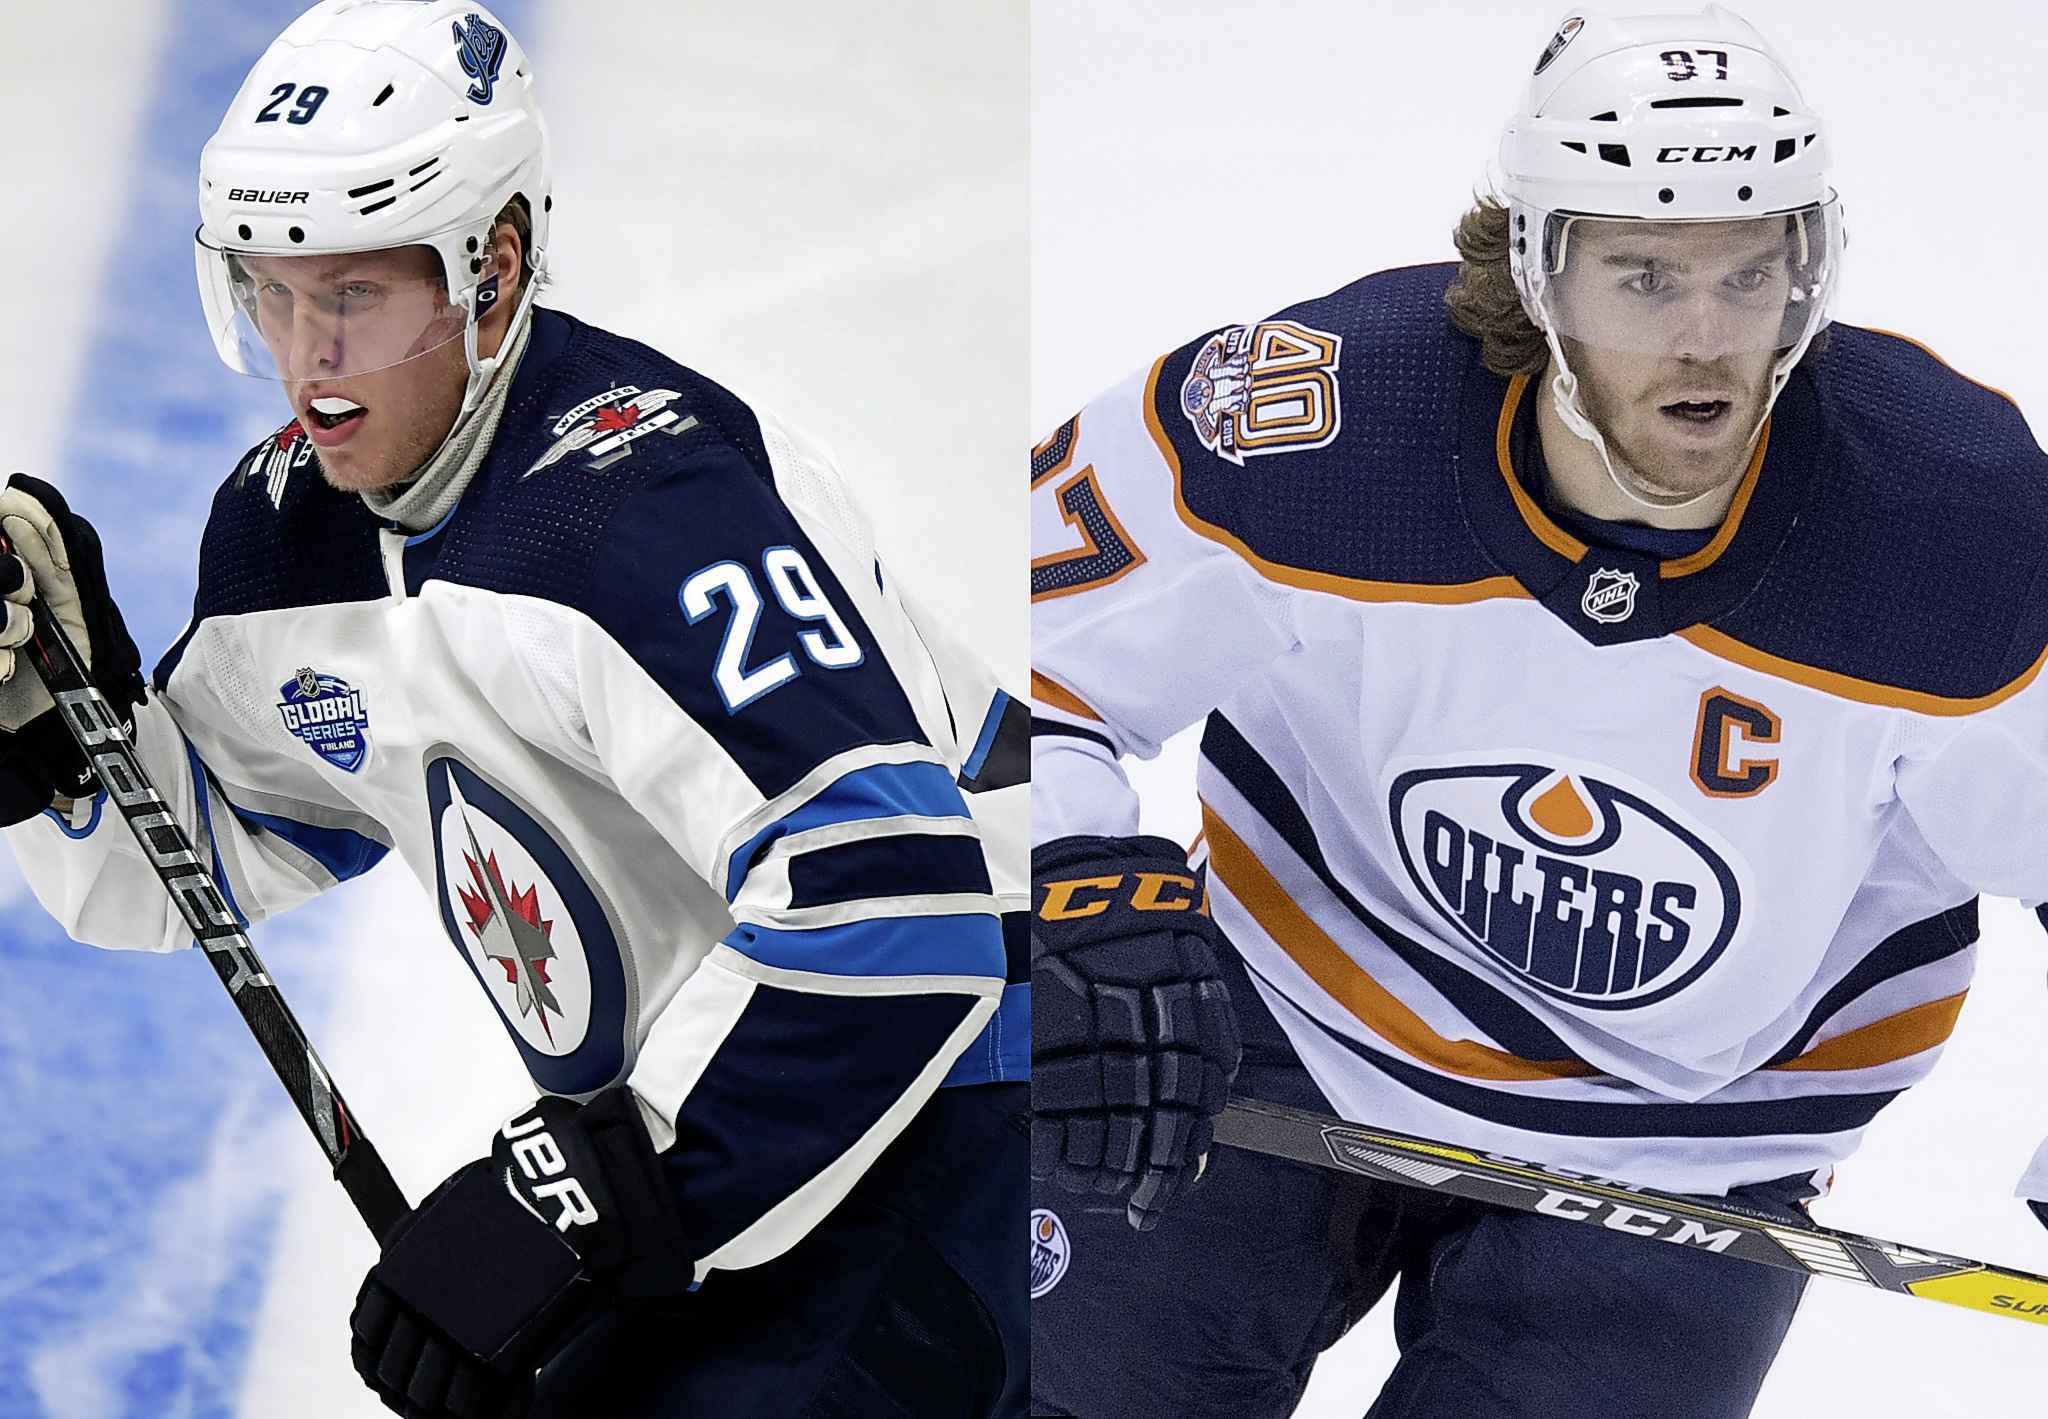 2016 second overall pick Winnipeg Jets' Patrik Laine, left, and 2015 first overall draft pick Edmonton Oilers' Connor McDavid.